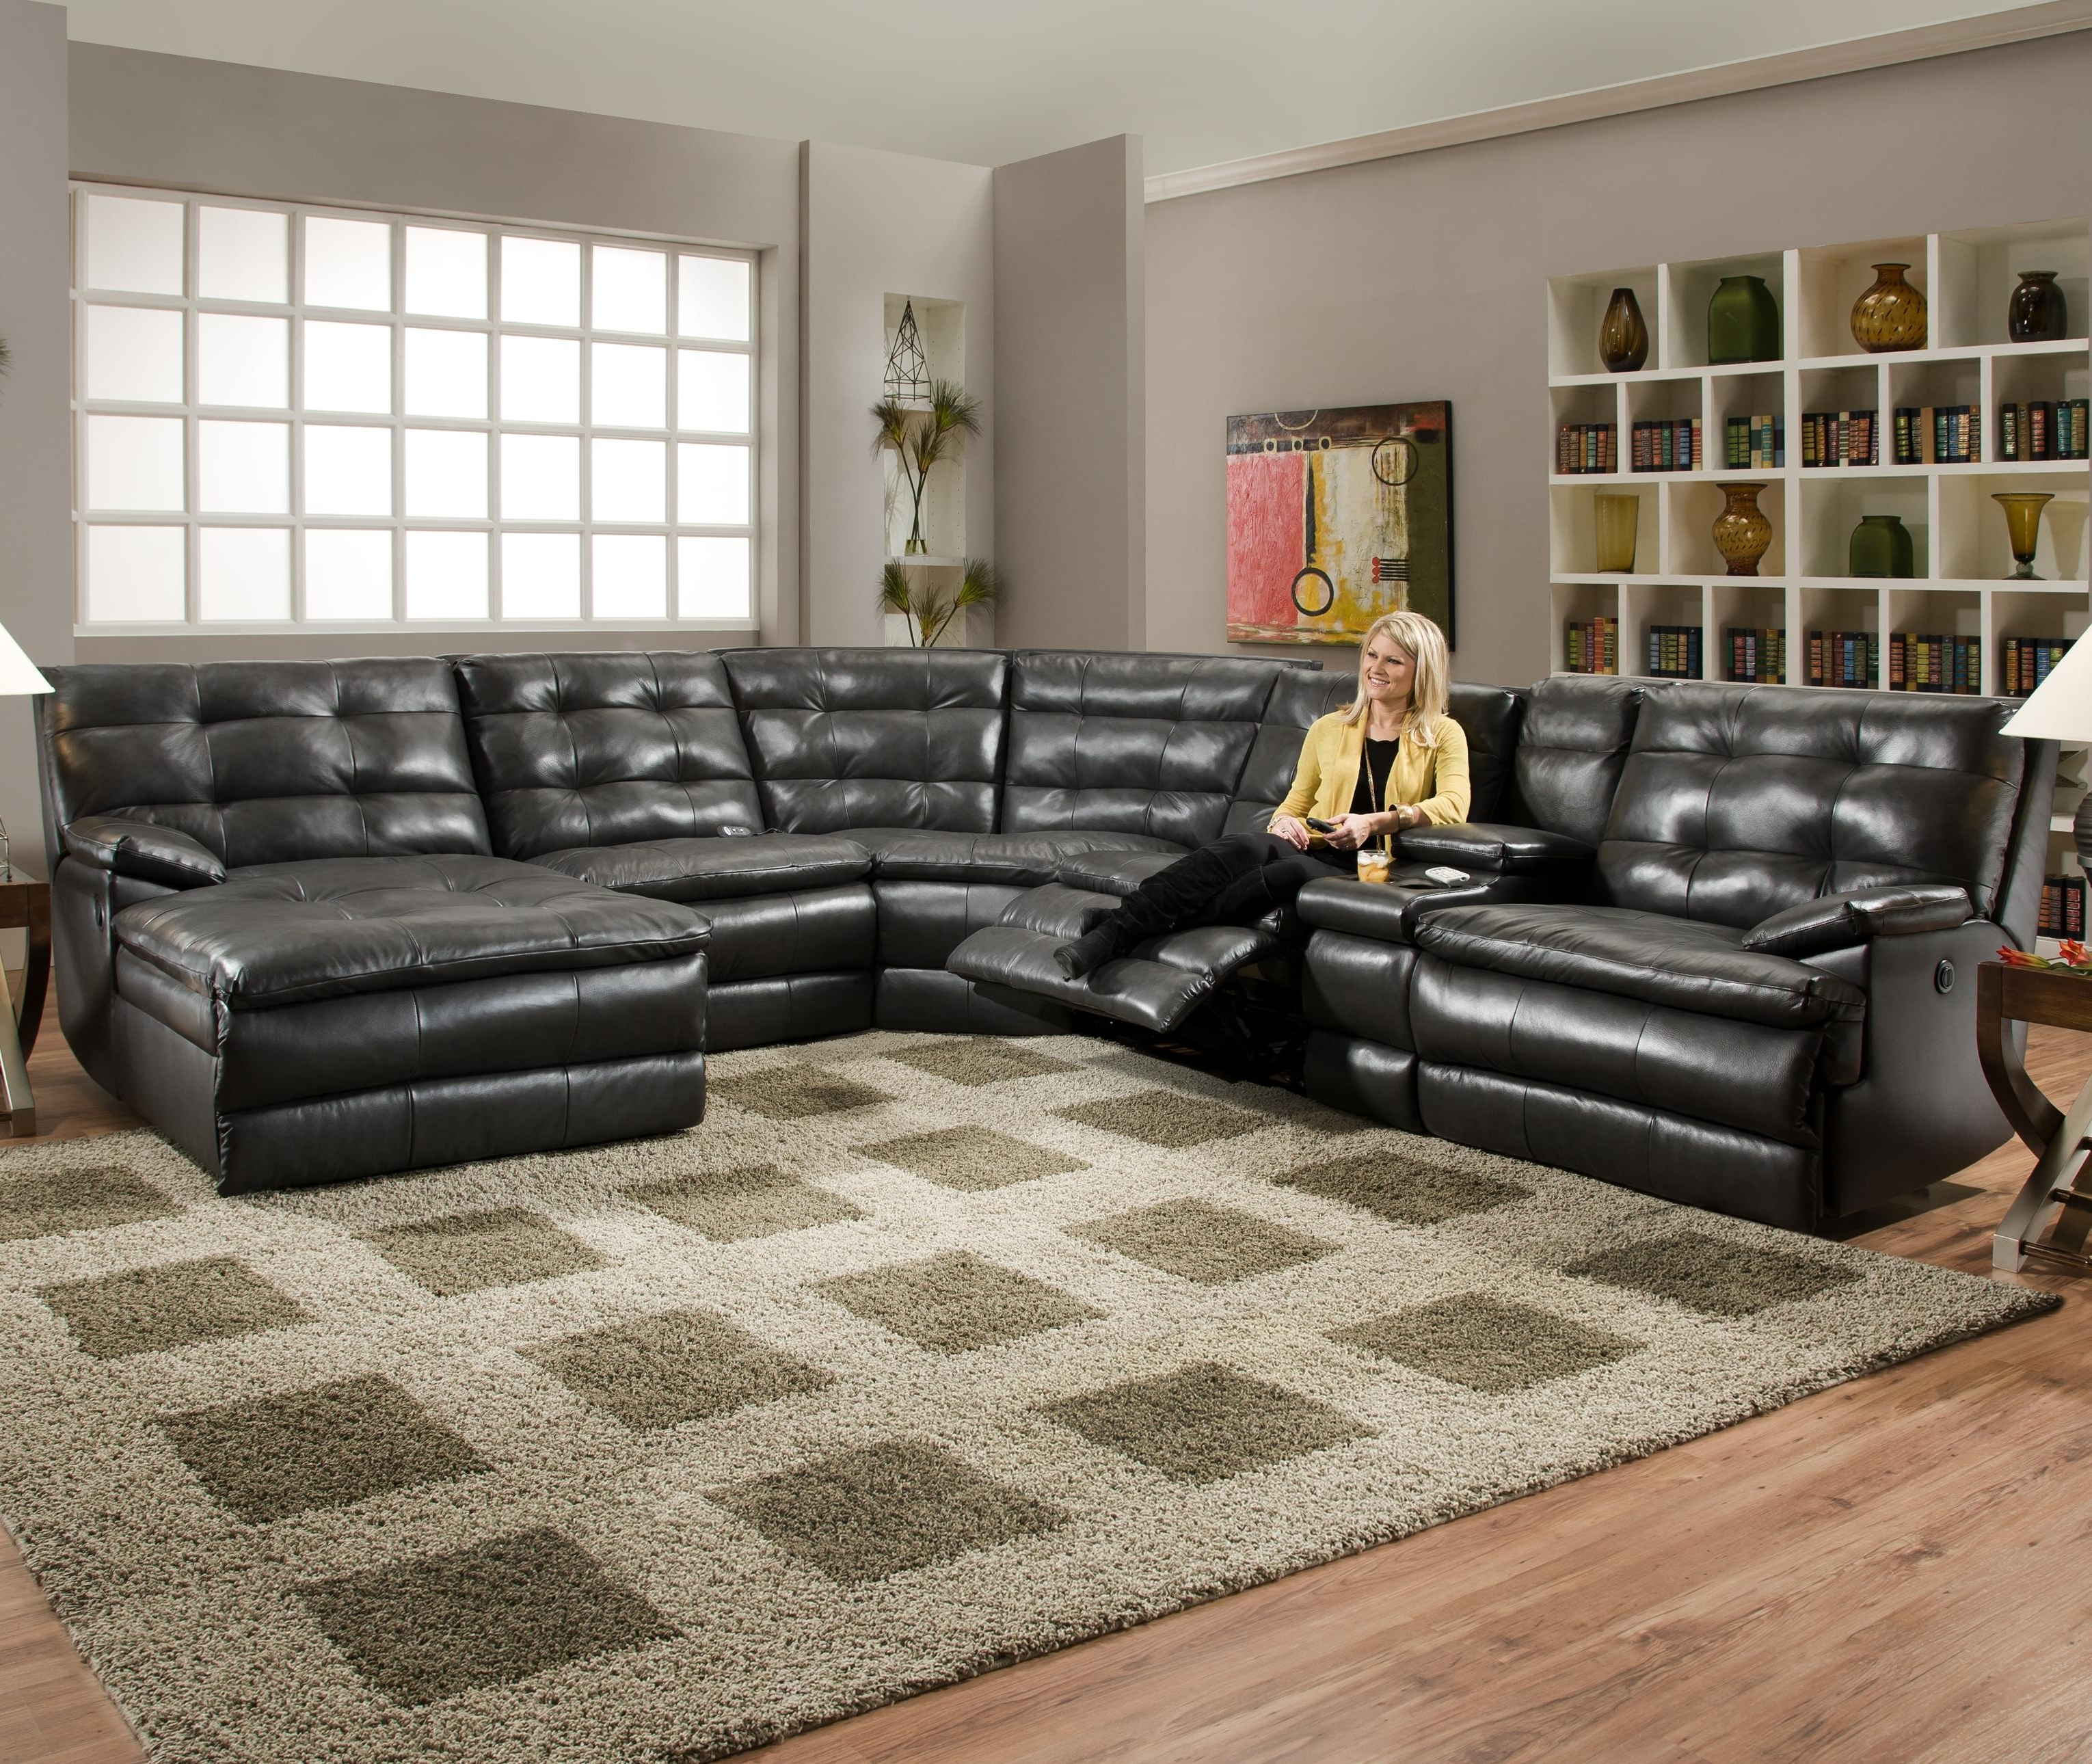 Best And Newest Deep Cushion Sofas Intended For Oversized Furniture Wide Couches Large Sectional Sofas Long Sofas (View 2 of 20)